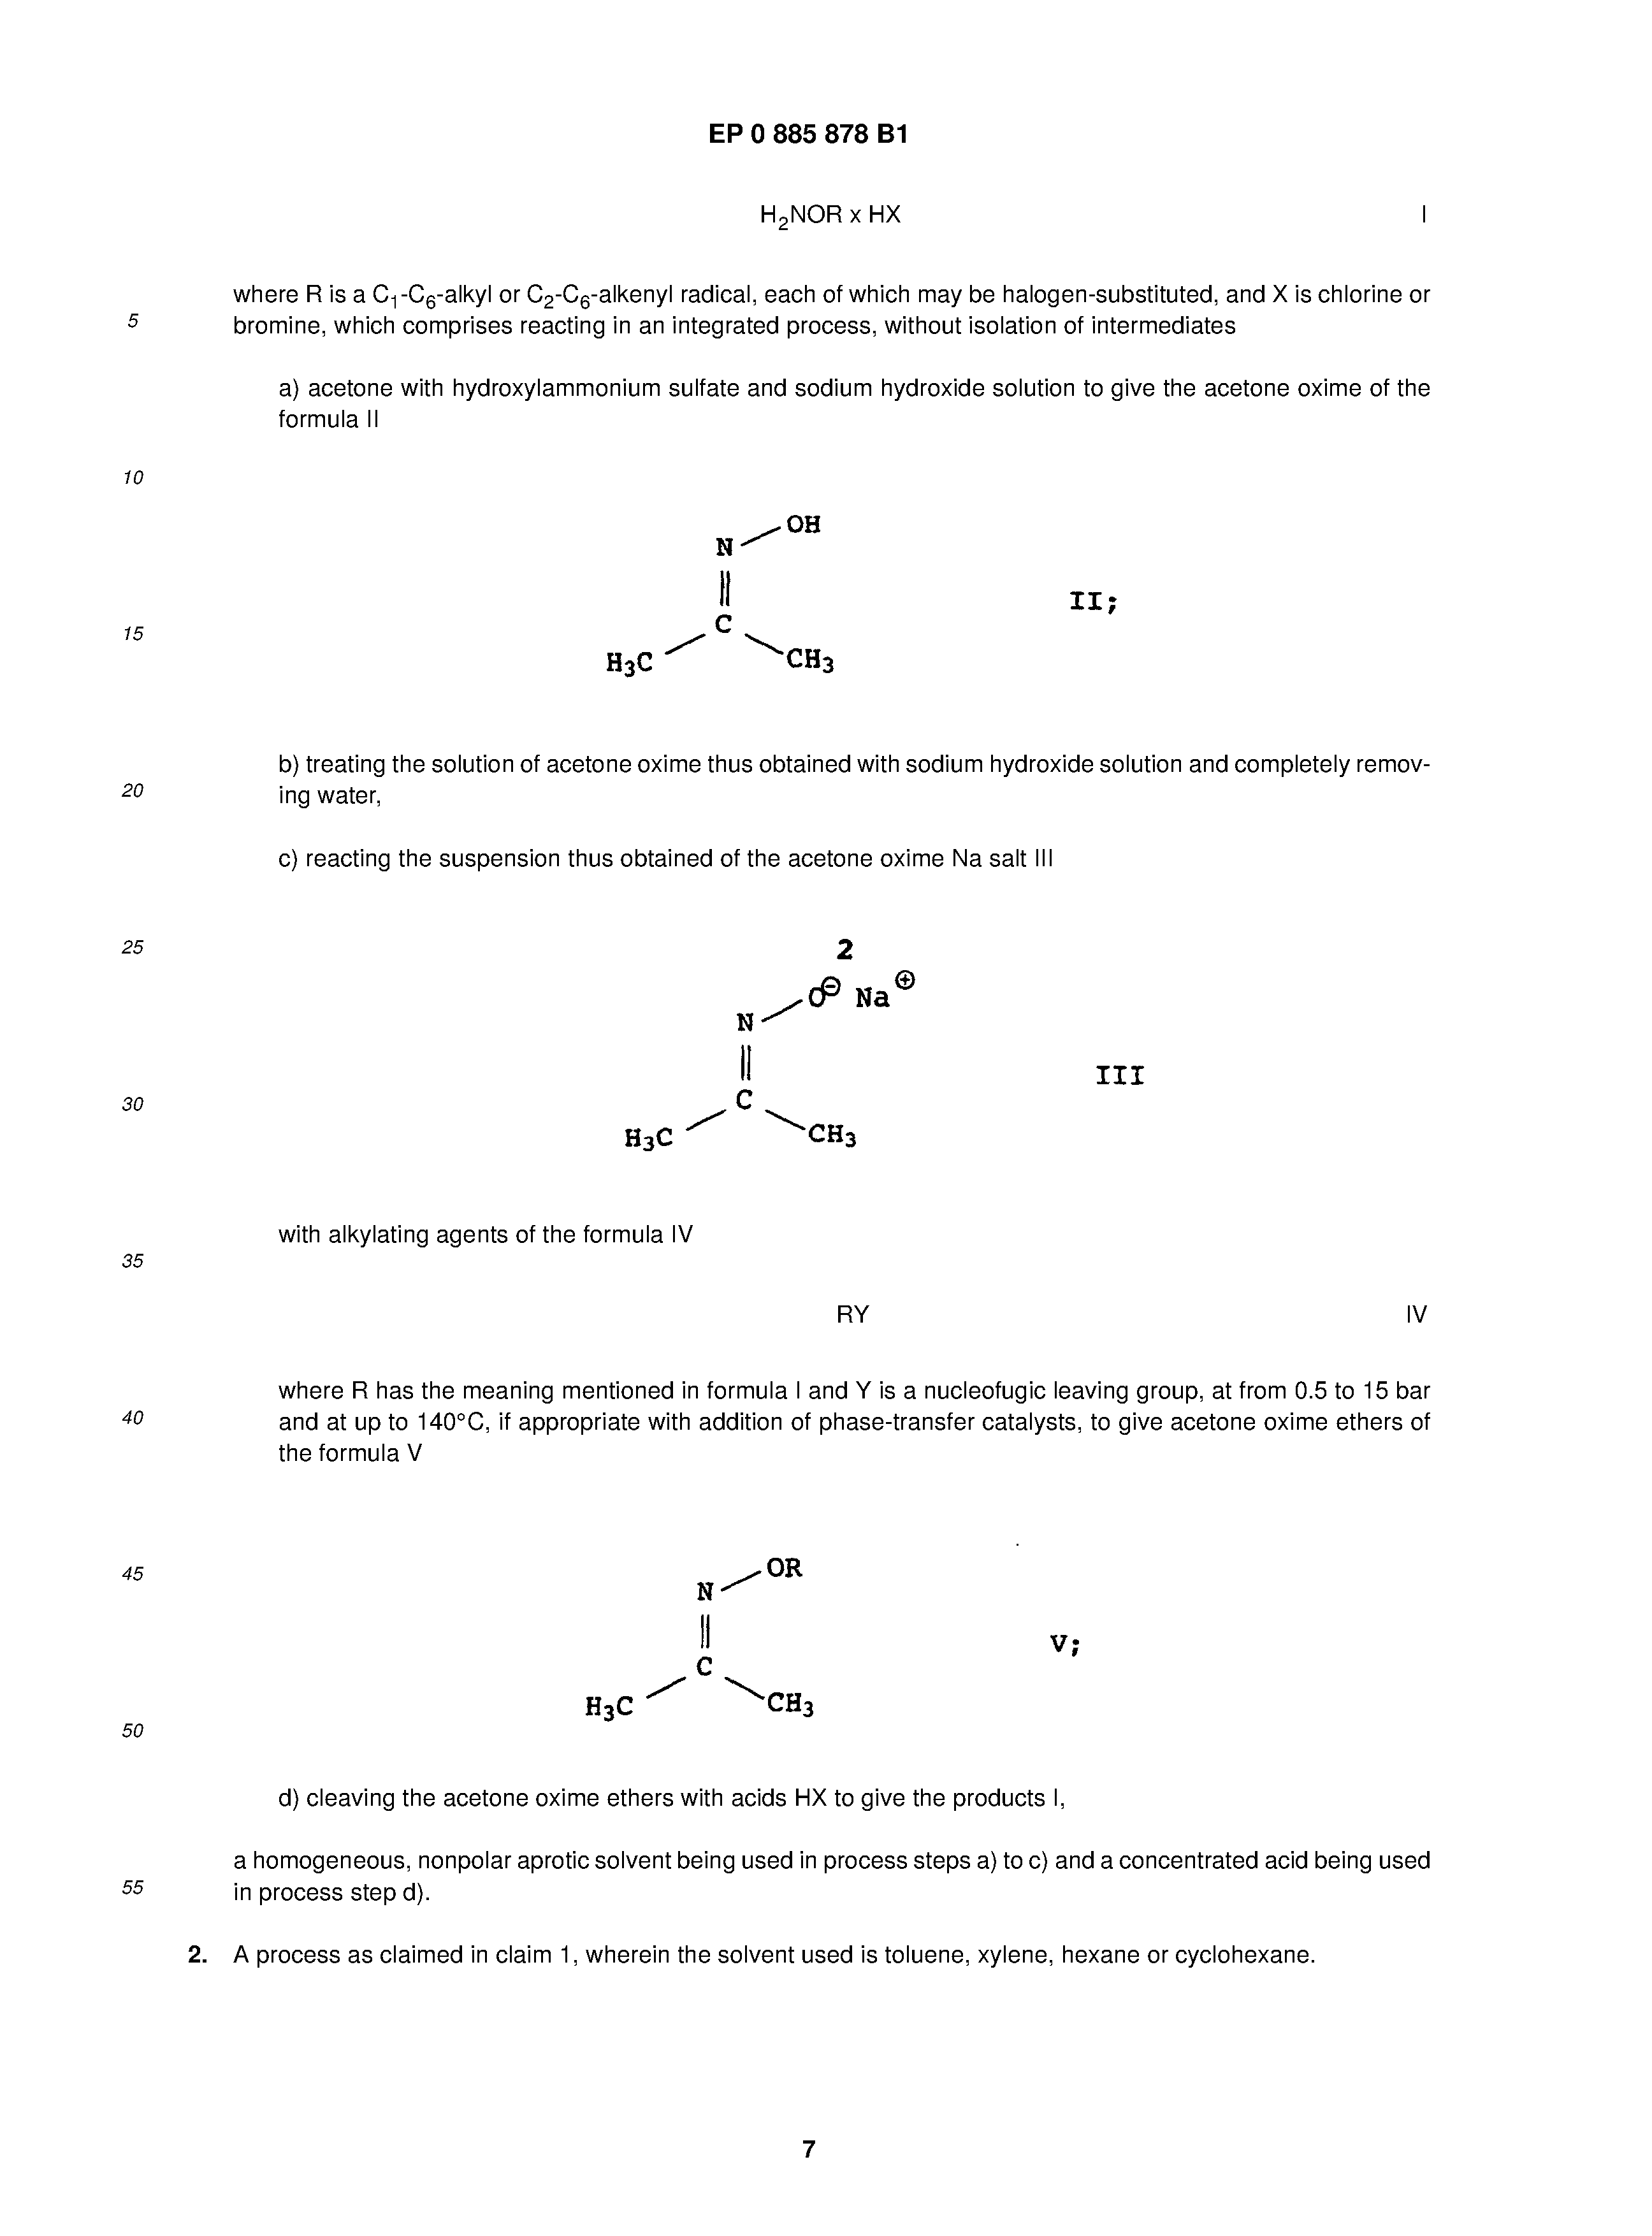 EP 0885878 B1 - Process For Preparing O-substituted